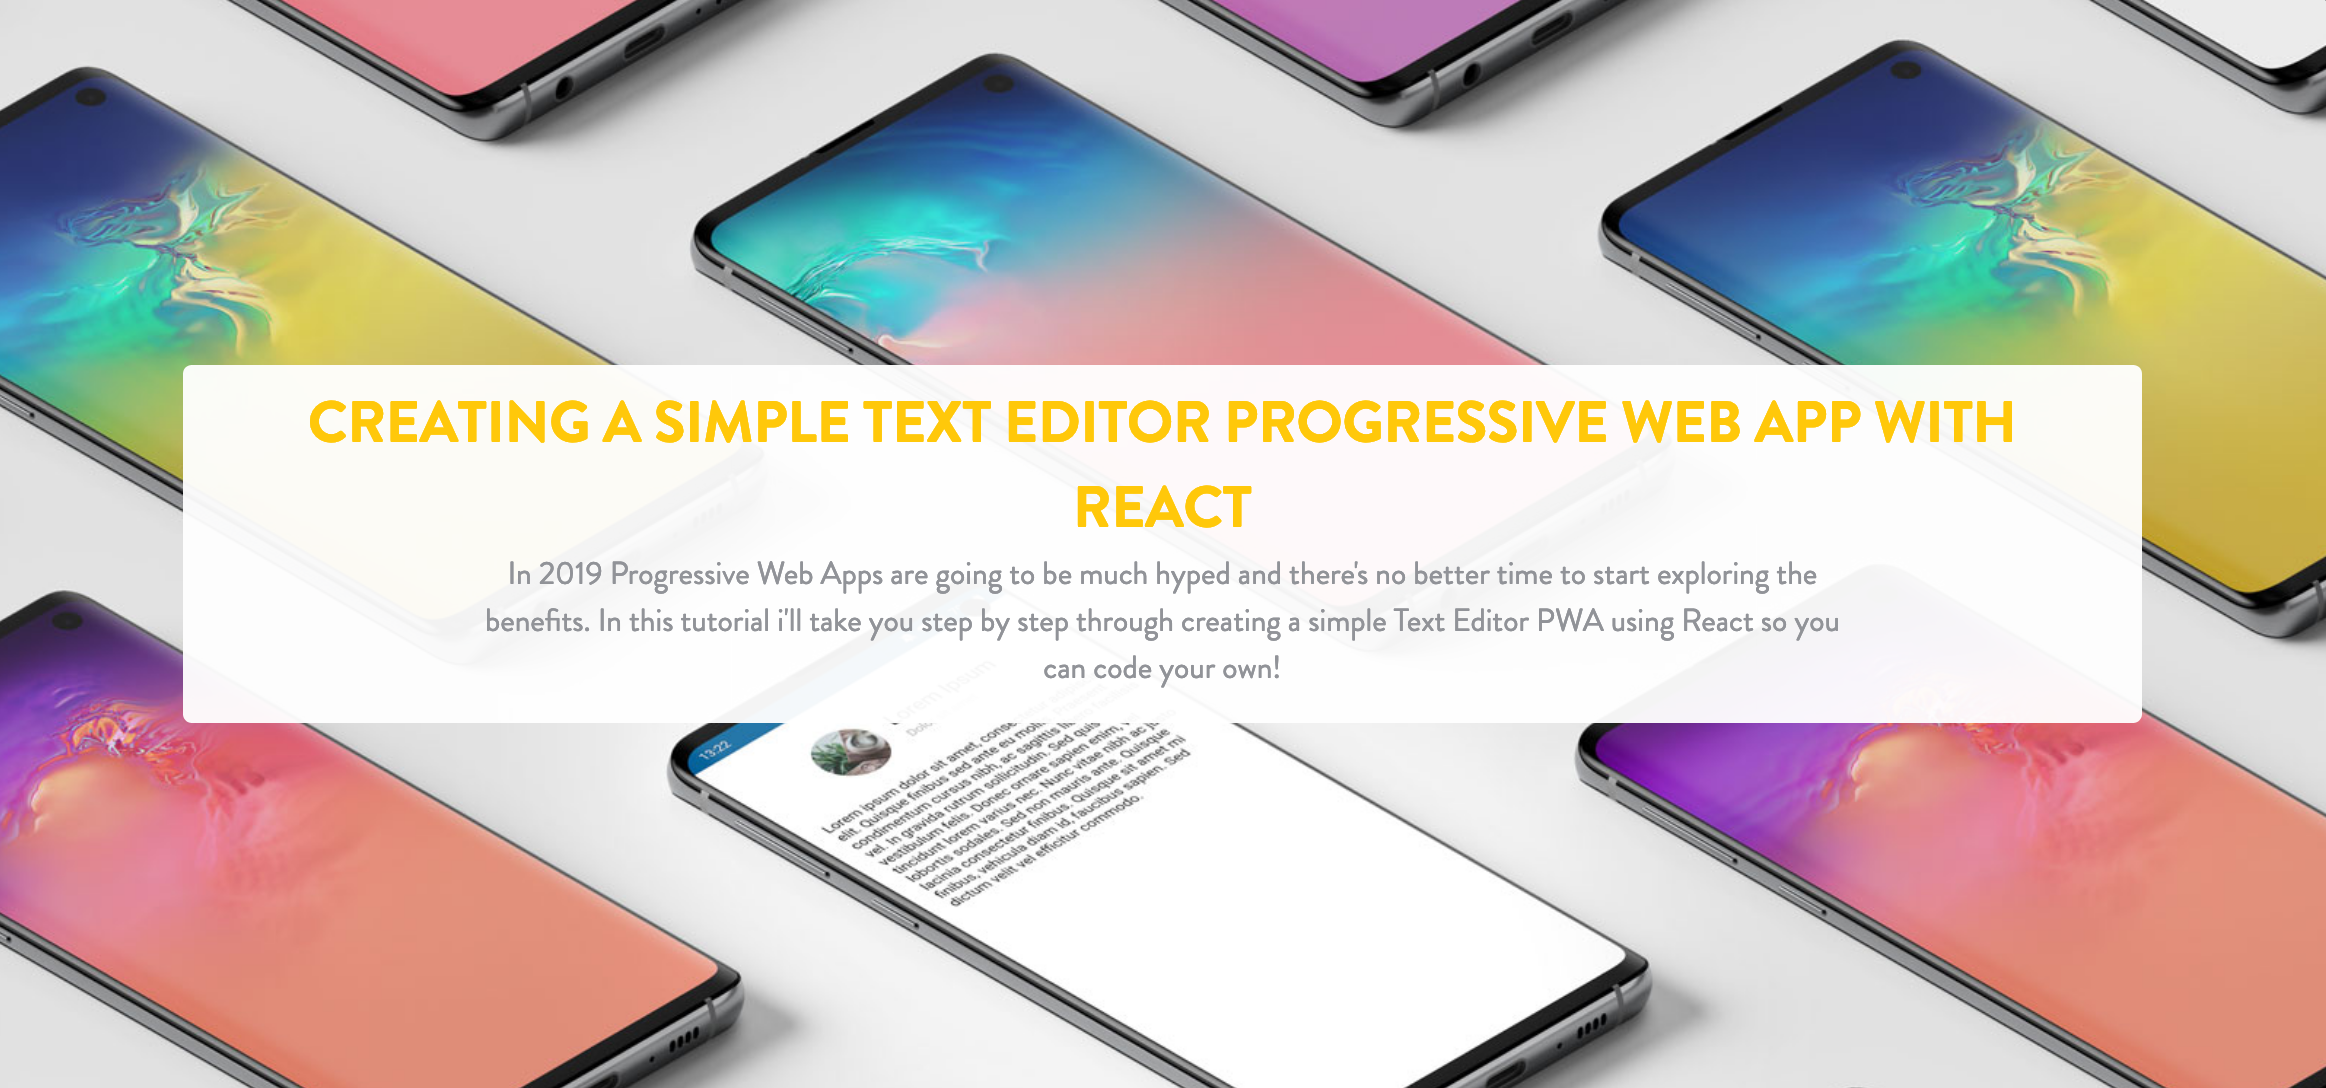 Creating a Simple Text Editor Progressive Web App with React